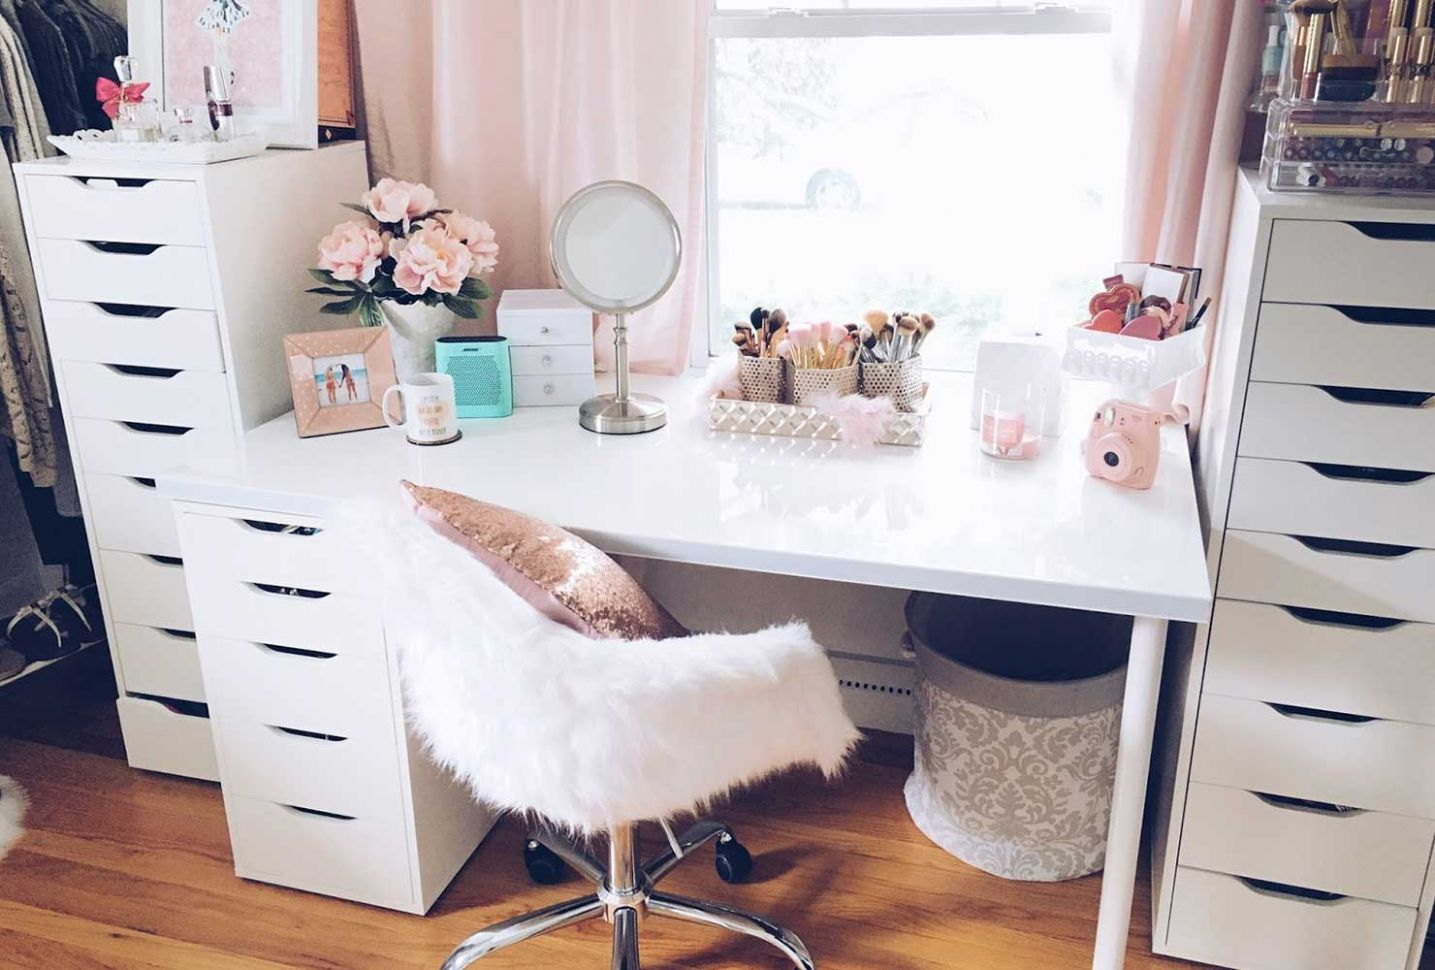 12 Makeup Room Ideas To Brighten Your Morning Routine | Shutterfly - makeup room art ideas